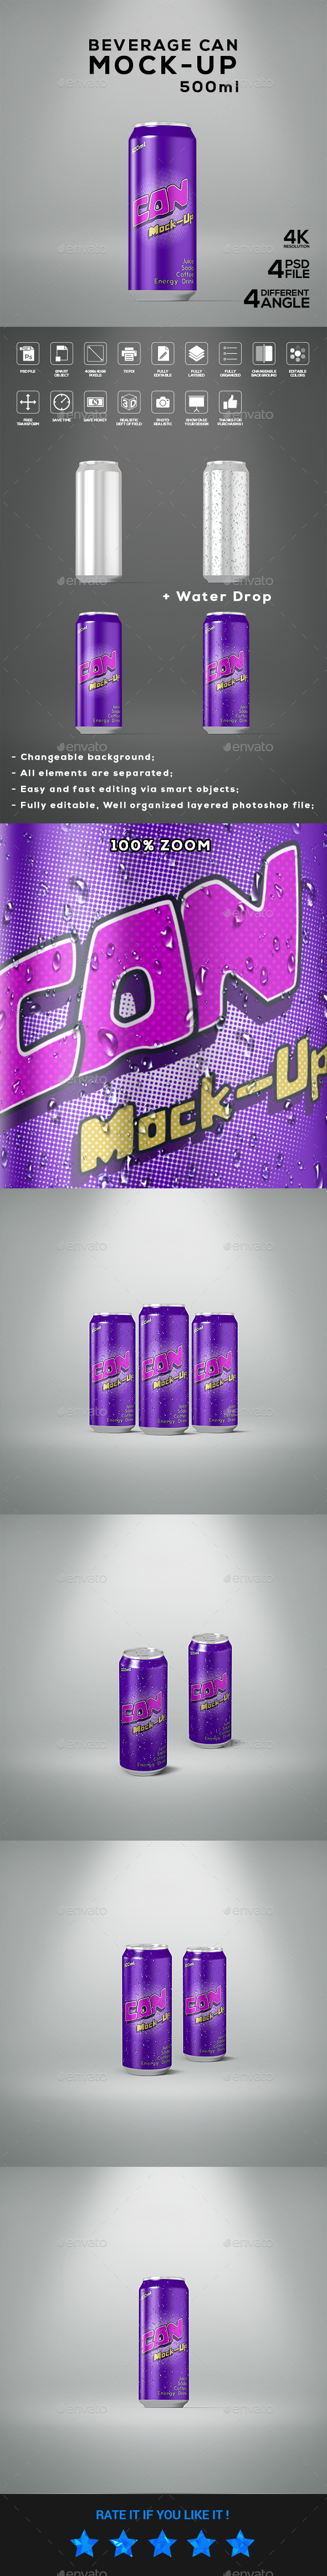 Beverage Can 500ml Mock-Up - Food and Drink Packaging